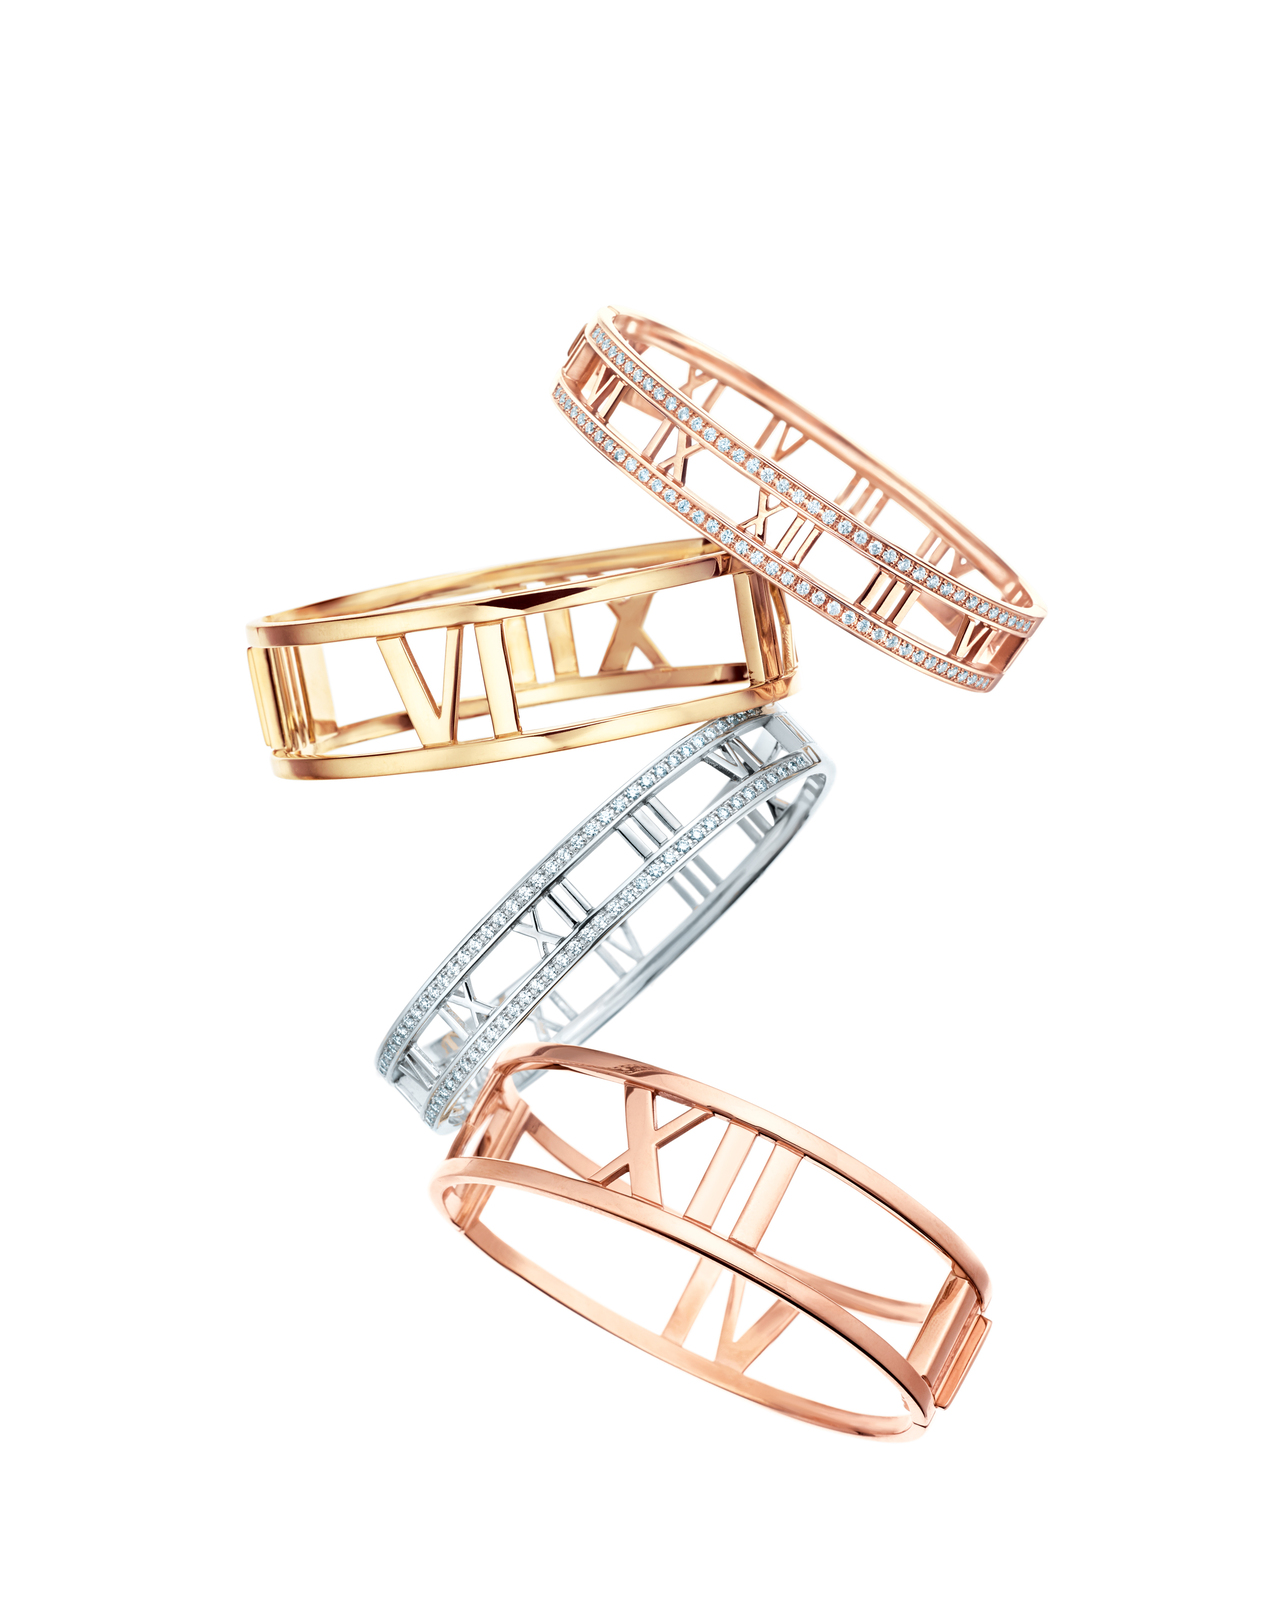 NUVO Holiday Wish List: Tiffany & Co Atlas Collection